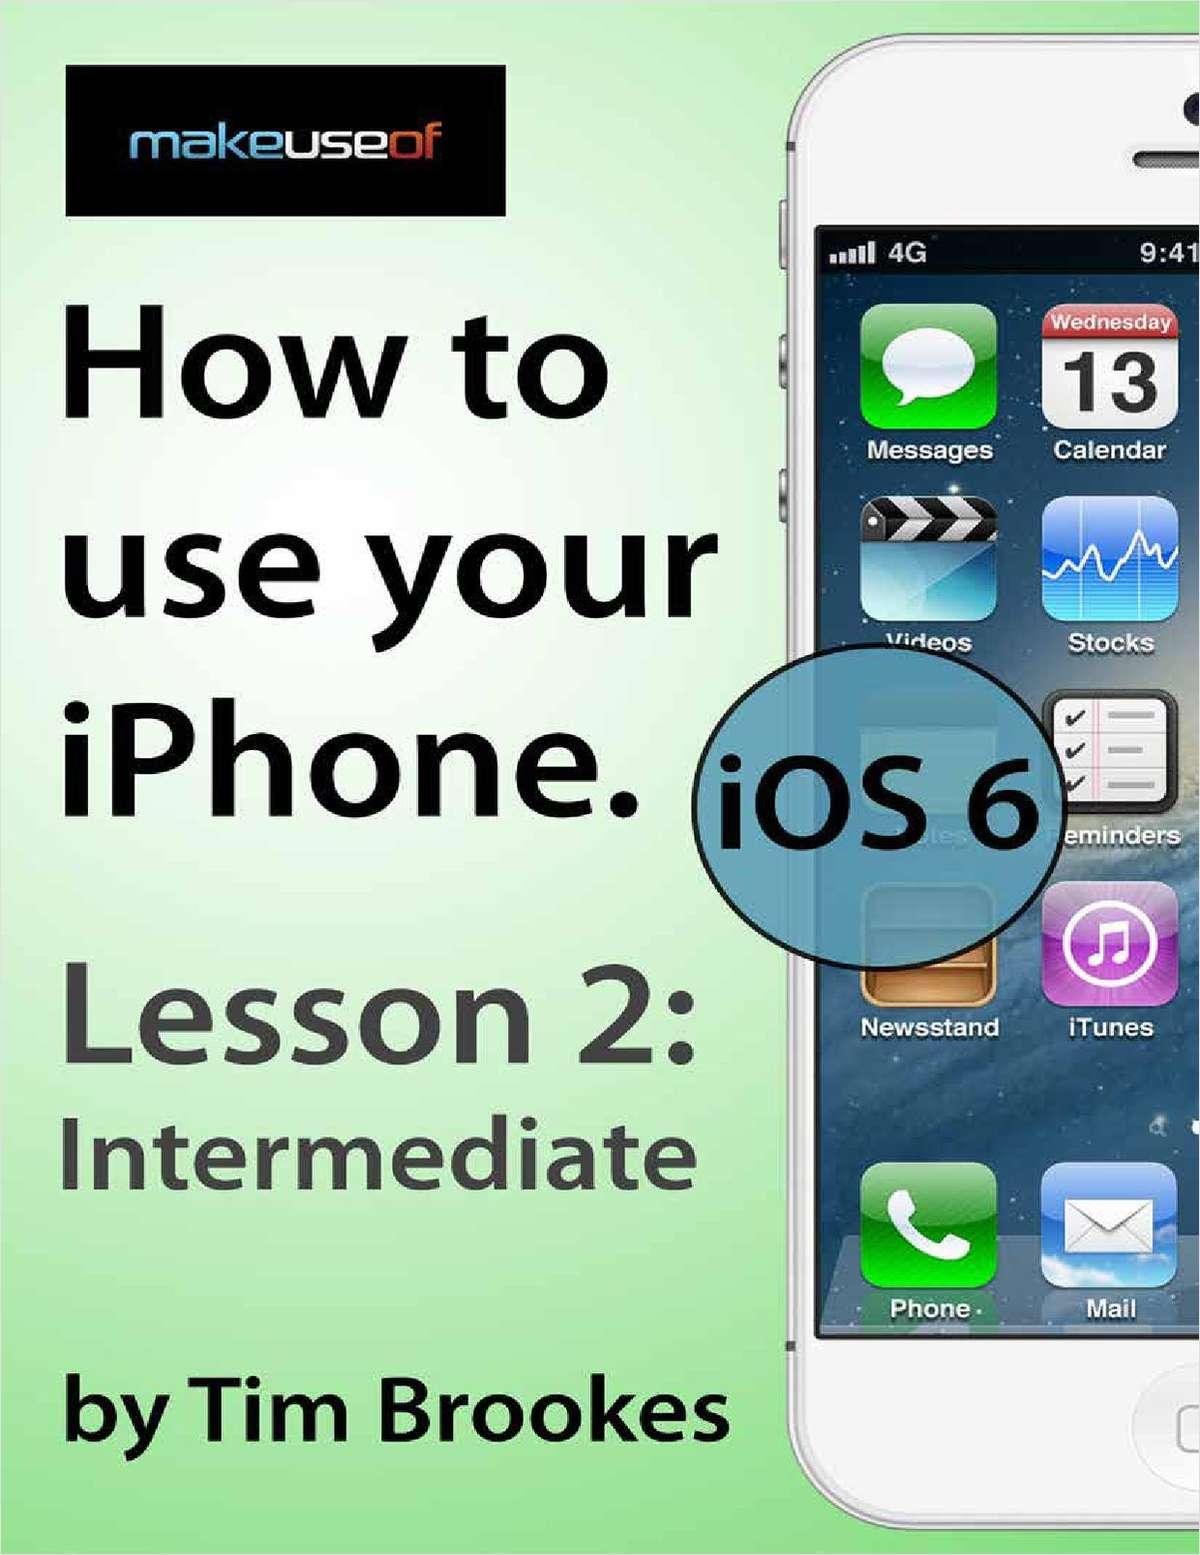 How To Use Your iPhone iOS6: Lesson 2 Intermediate